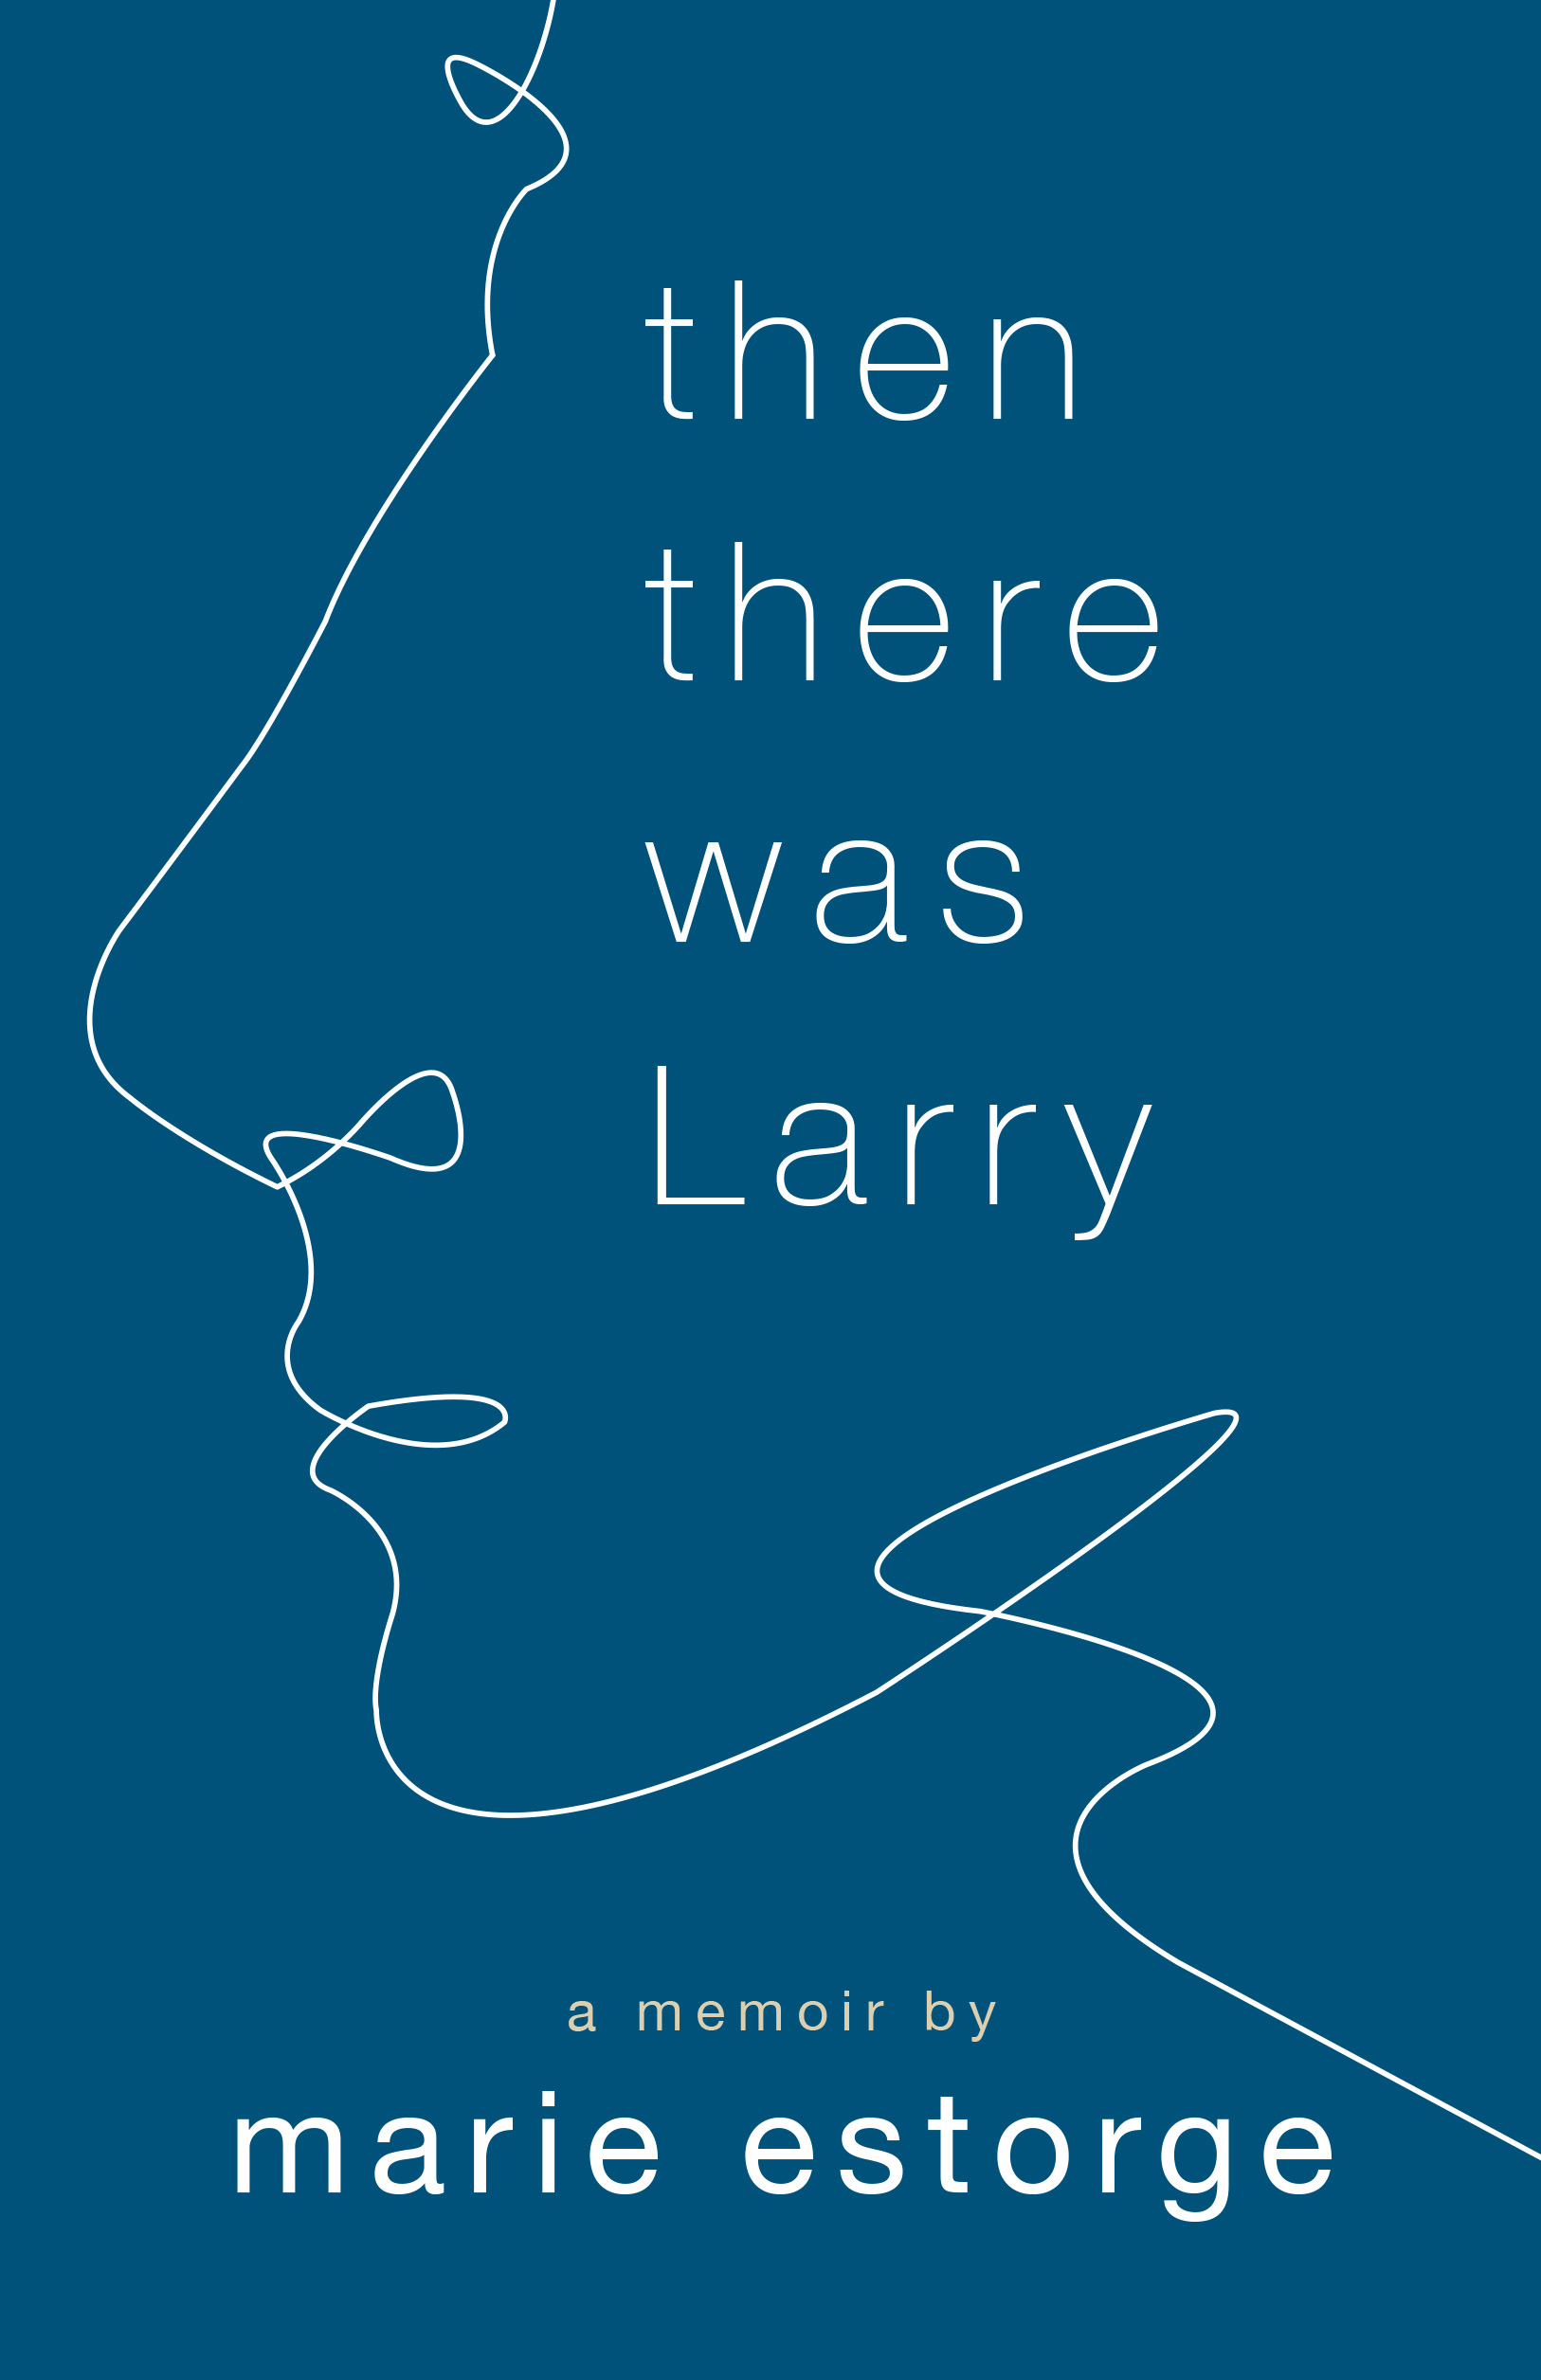 ThenThereWasLarry_1f-1-The-Final-Version-cropped-to-front-cover